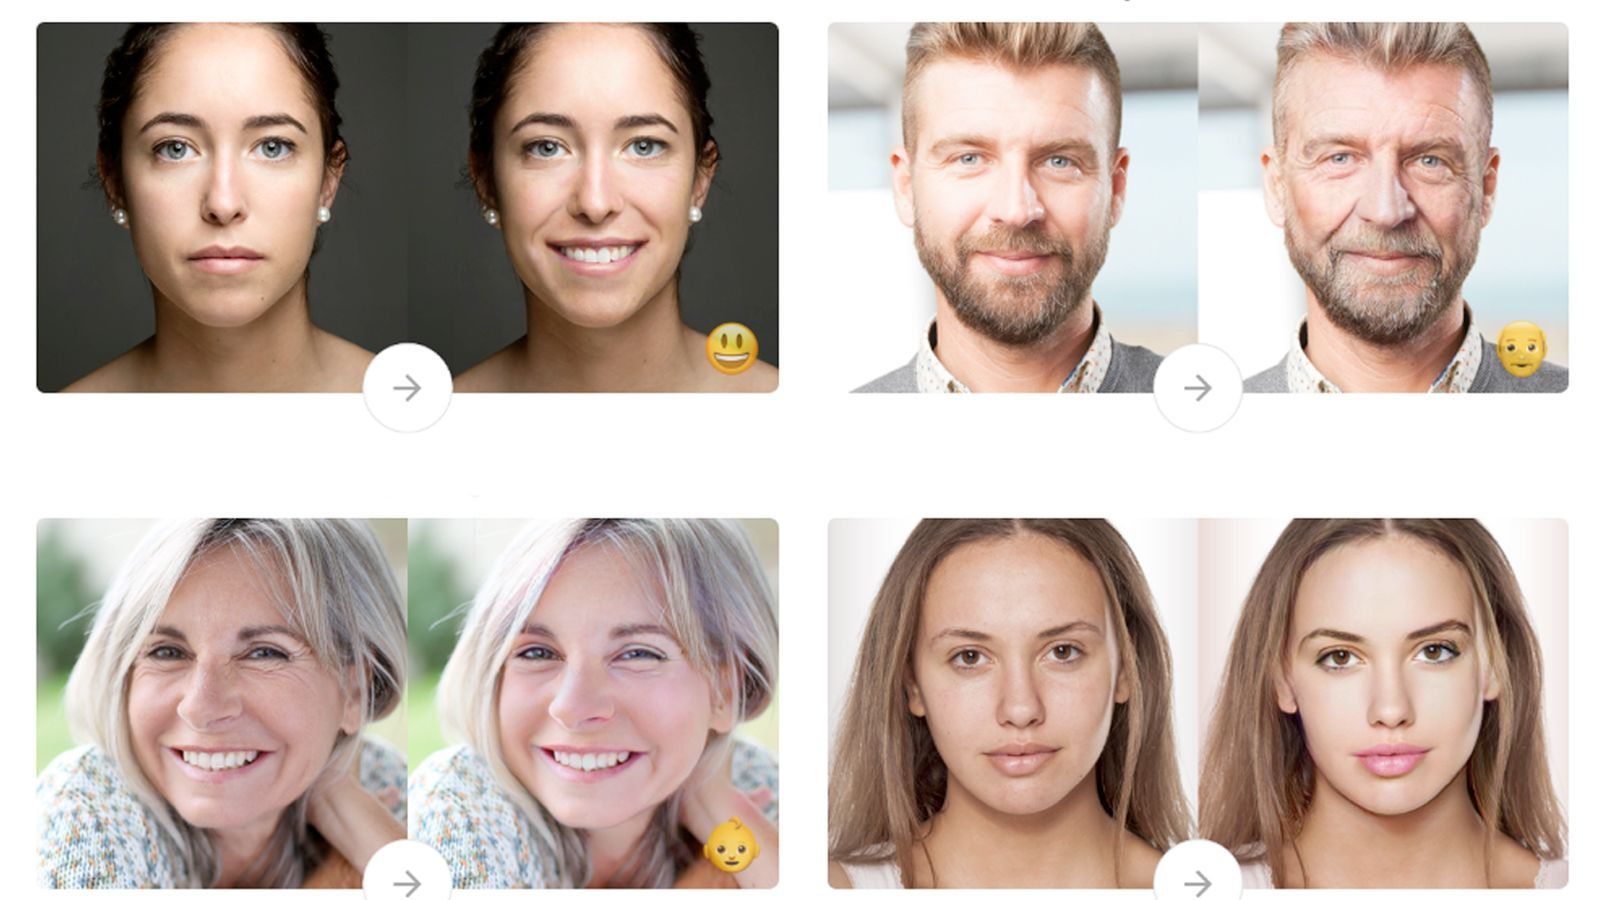 Celebs flock to FaceApp - but what are the risks?